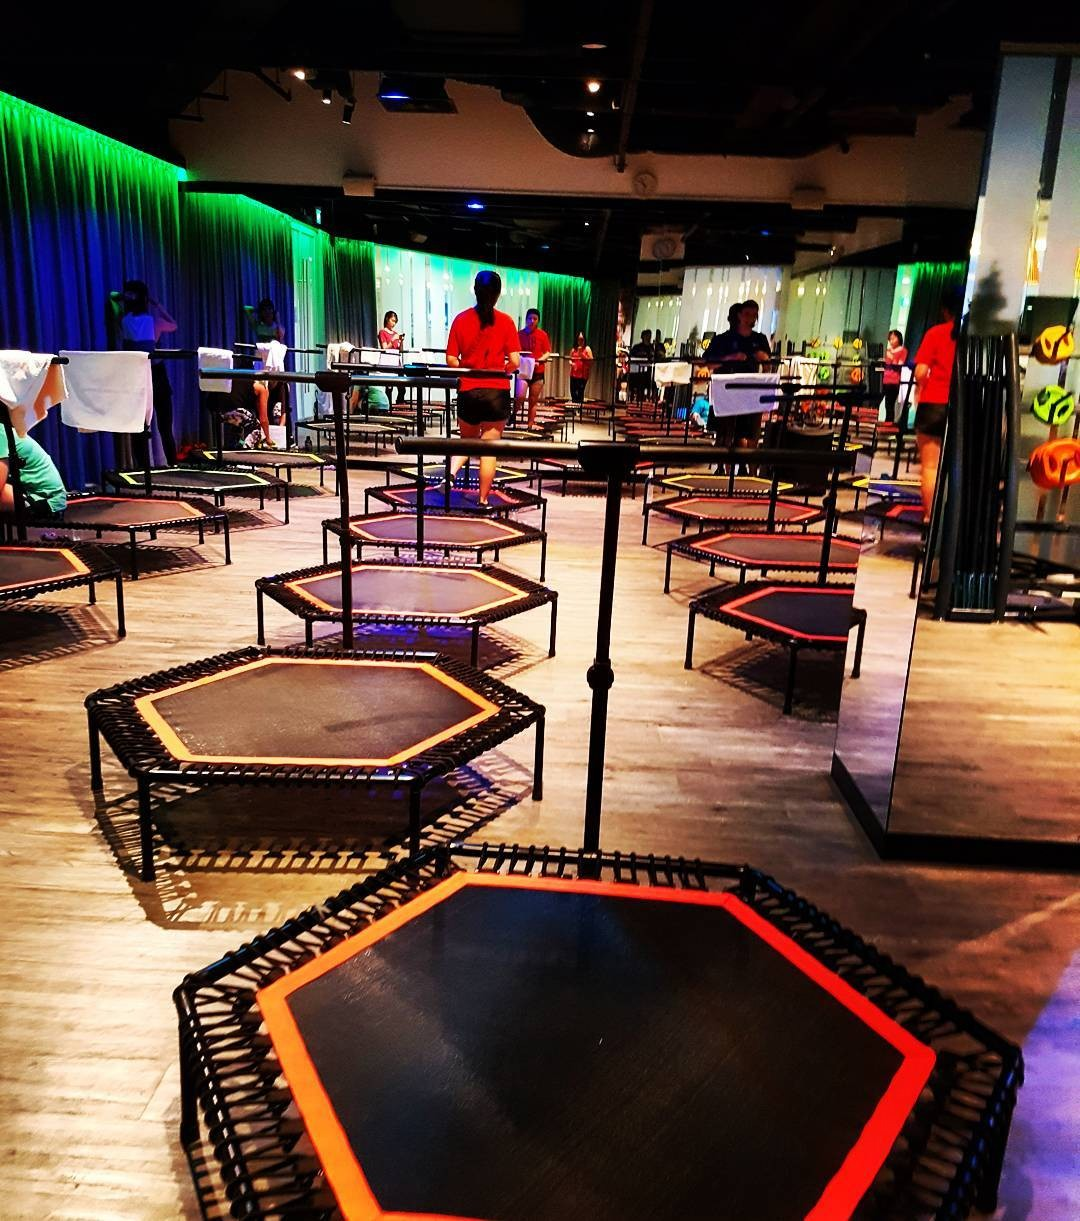 Trampoline park - BBounce rebounding  cardio work out gym